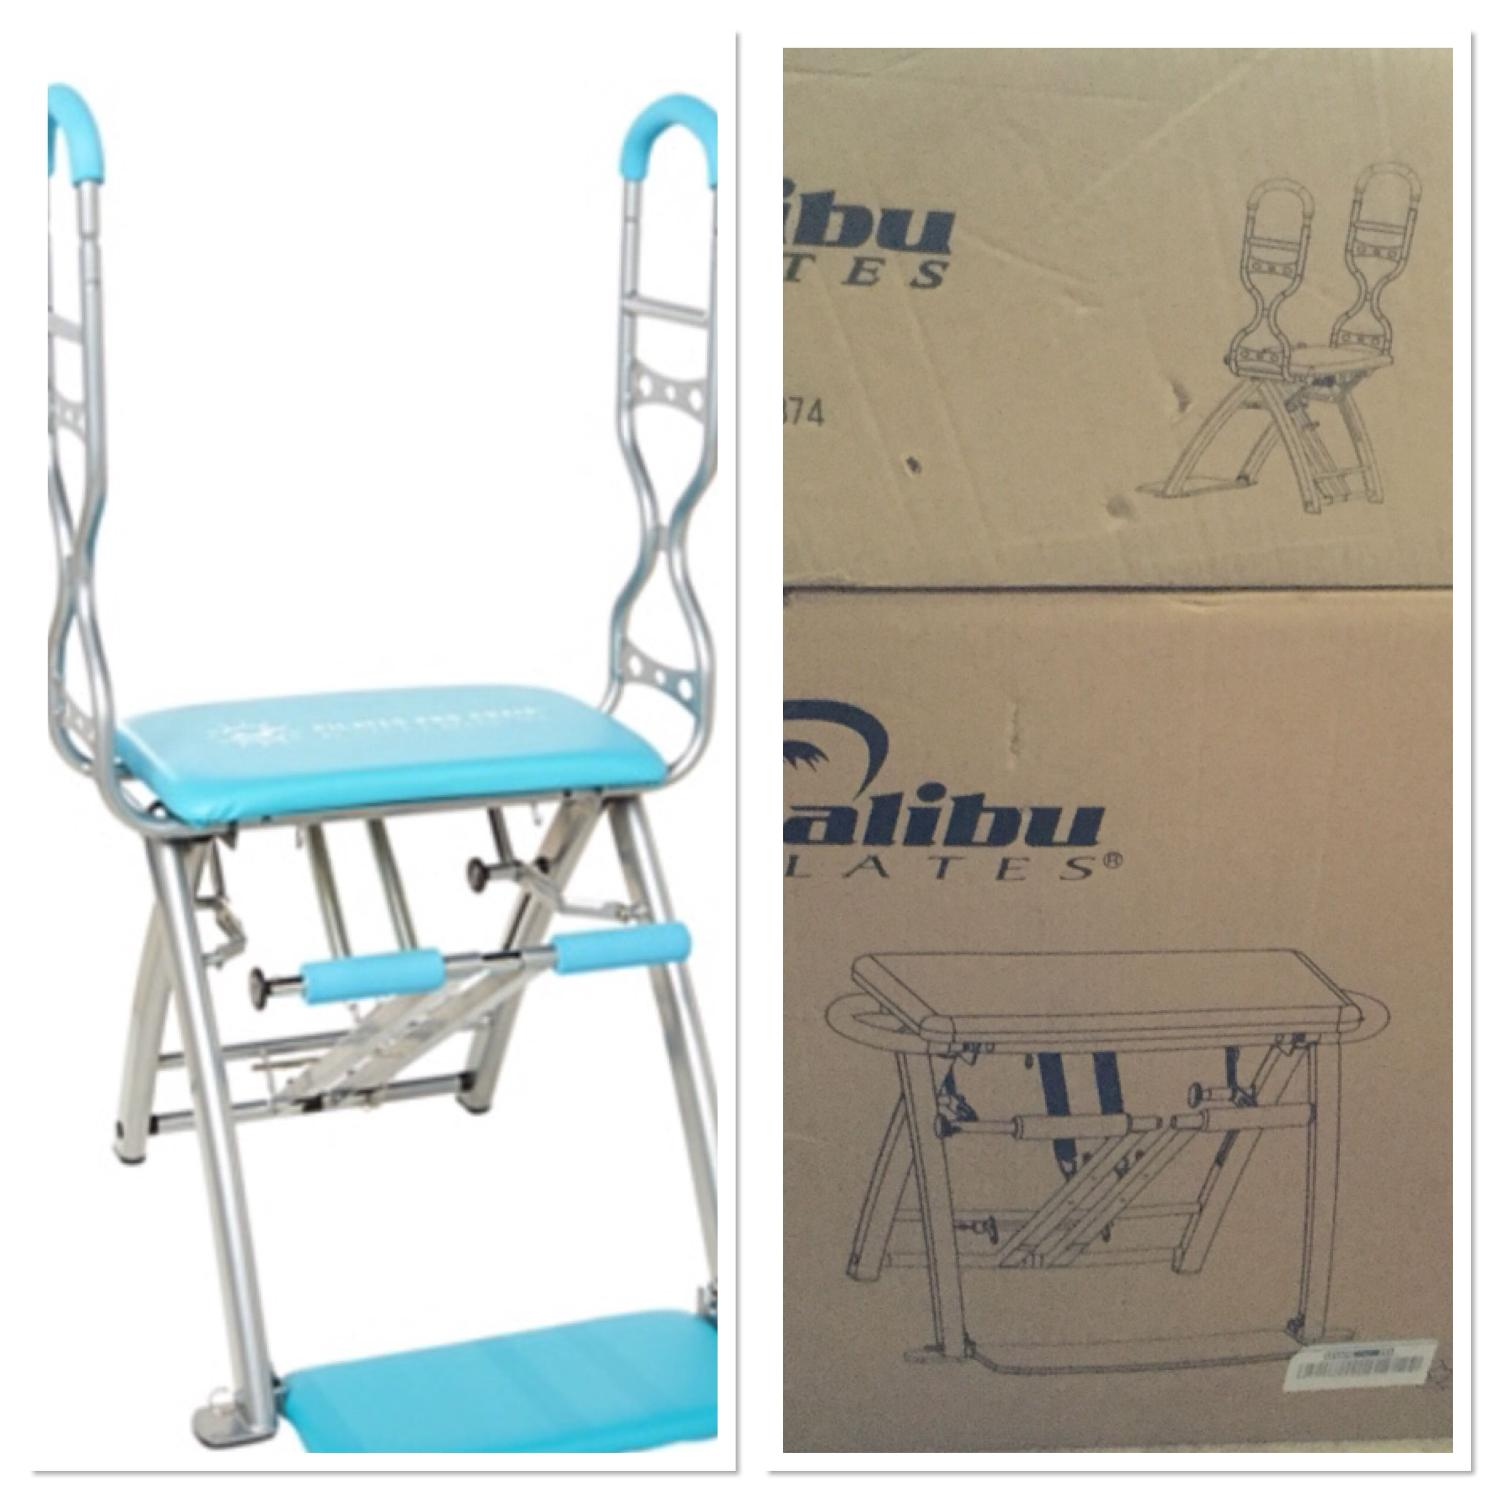 Best Pilates Chairs For Sale: Find More Pilates Pro Chair Max With Sculpting Handles For